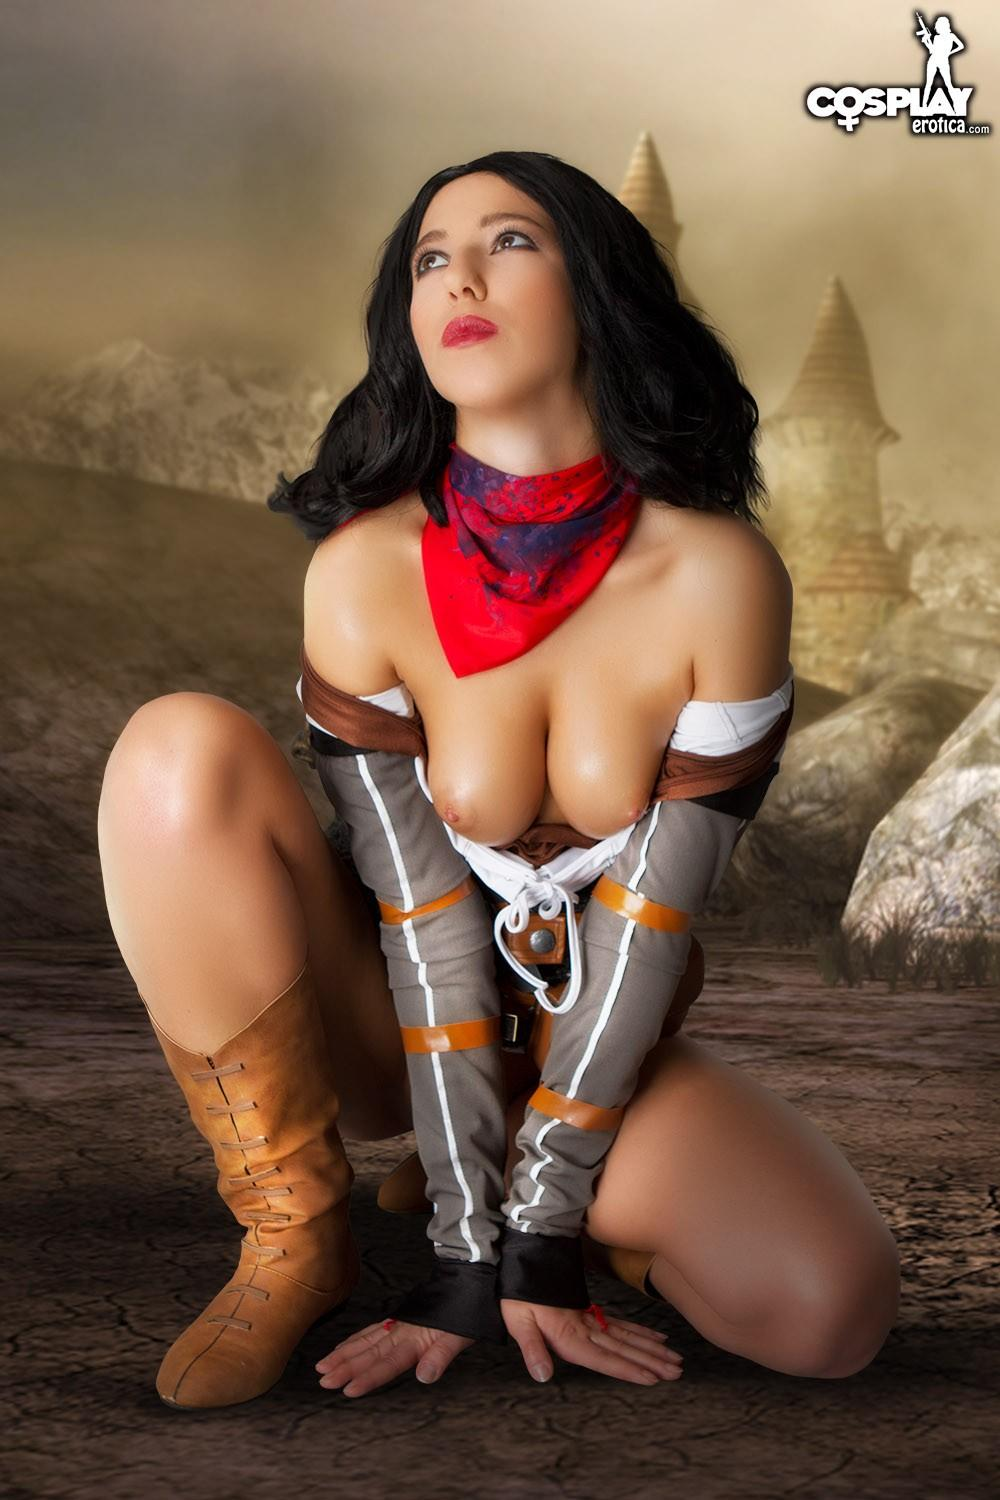 Hot Cosplay Girl Shelly Gets Her Nerd Freak On In A Hot -5718